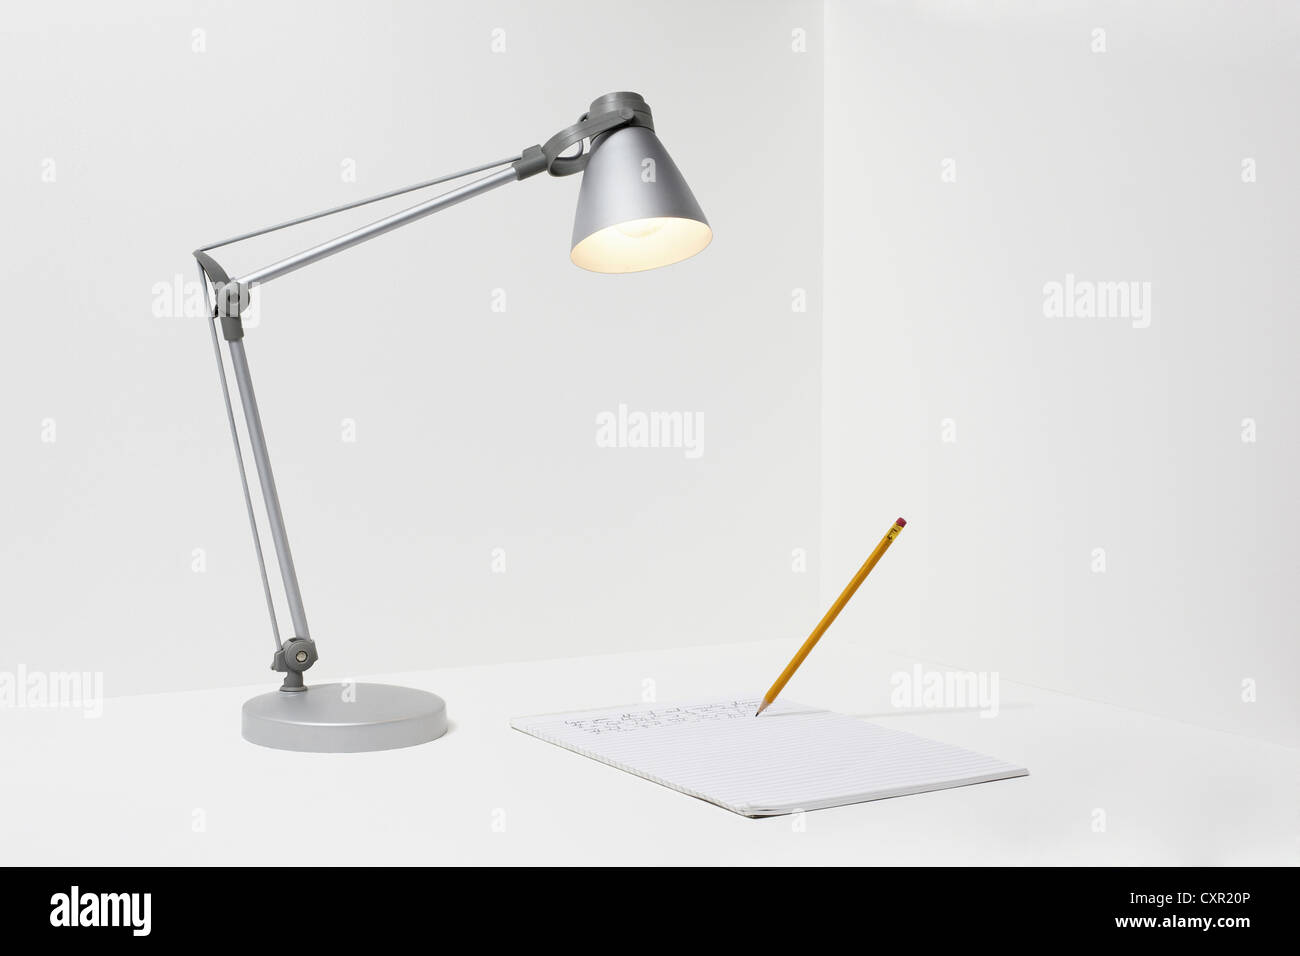 Lamp, pencil and paper - Stock Image